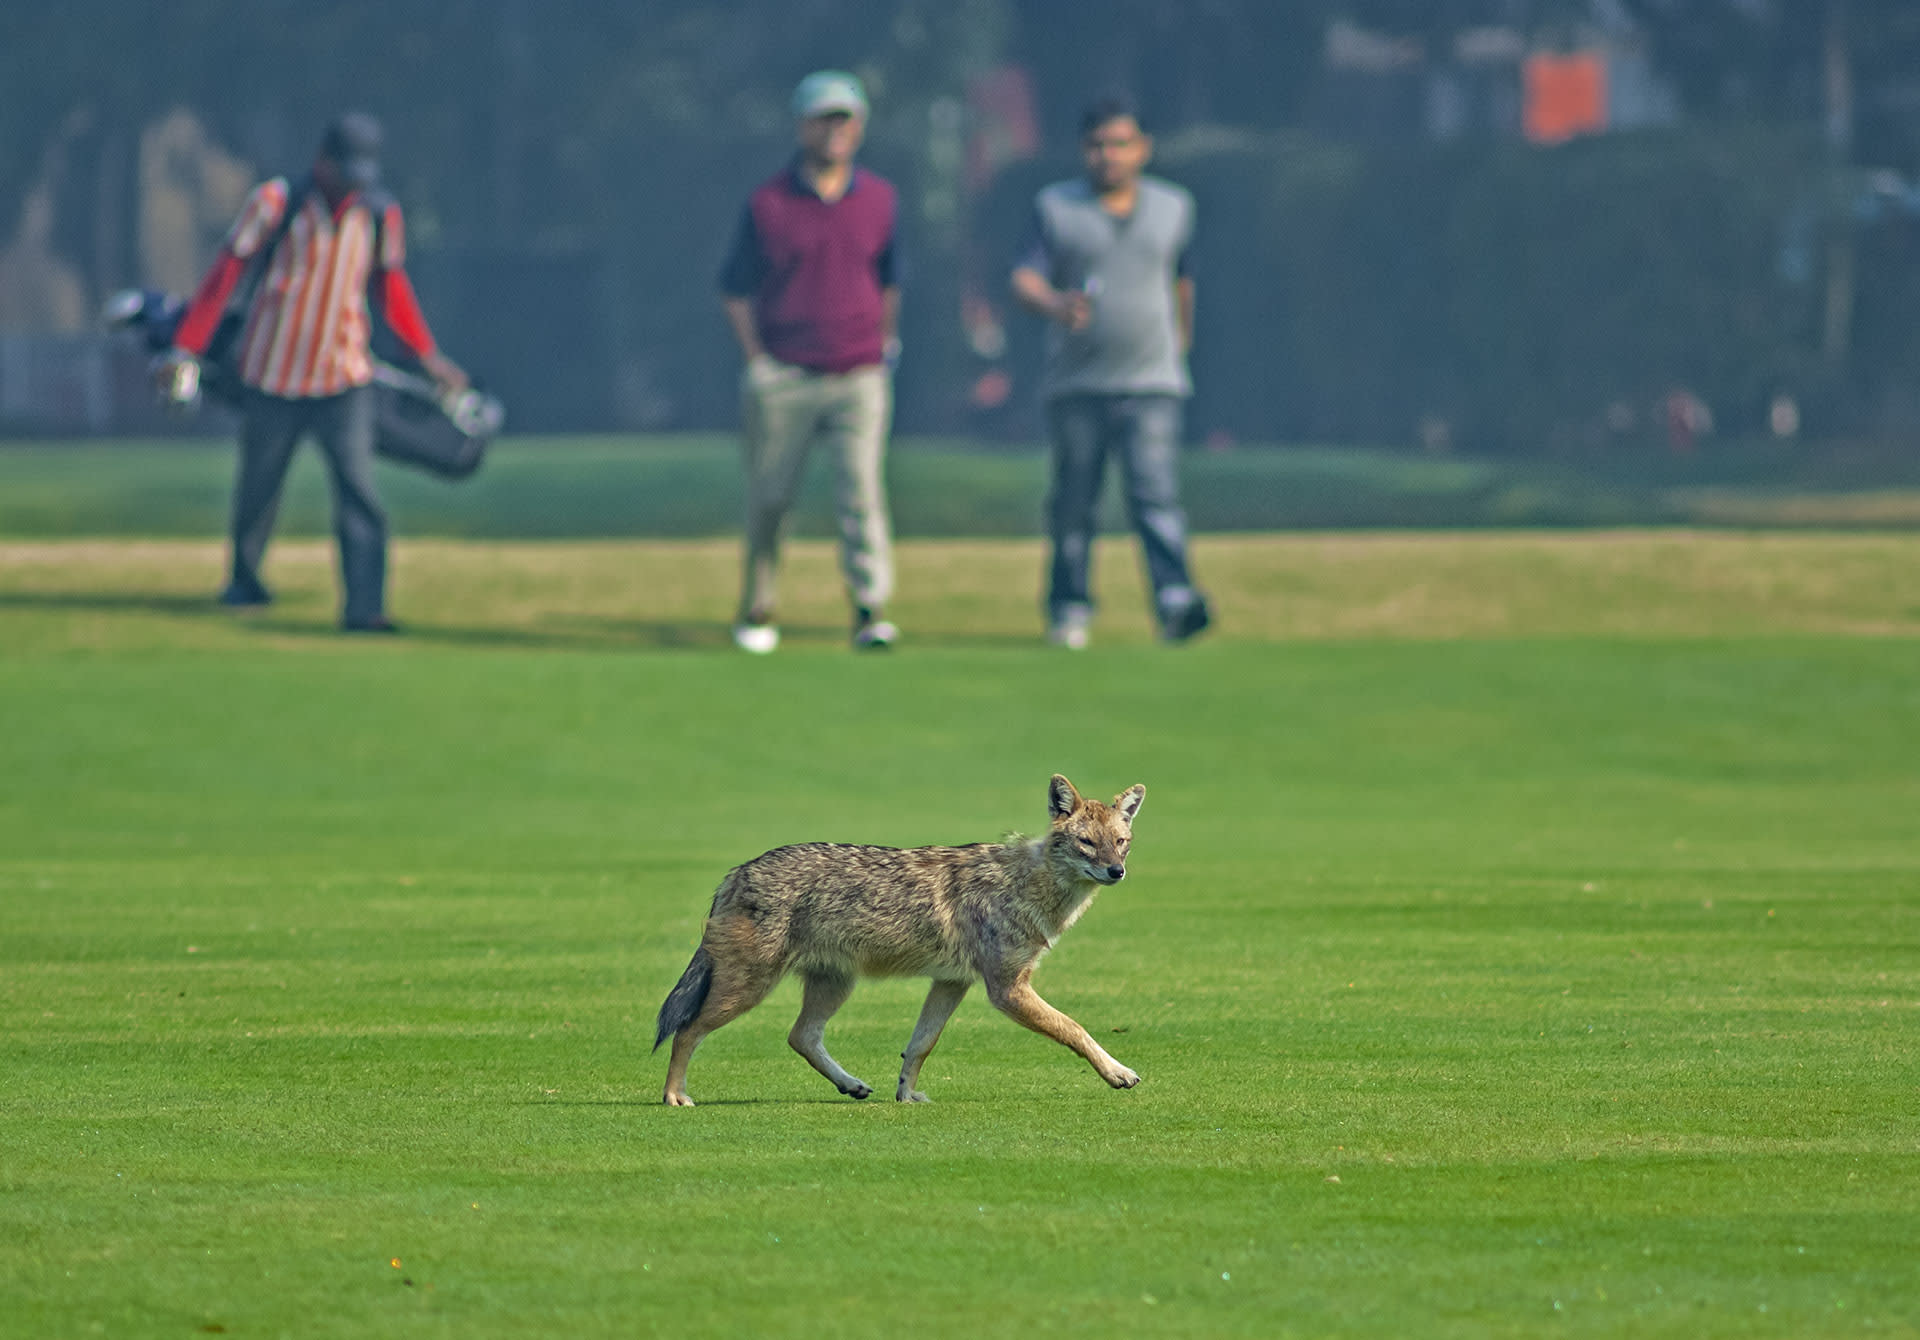 The adaptable nature of the jackal along with its efficiency as a scavenger has enabled it to thrive in some urban environments. This individual was photographed at the Tollygunge Golf Club in Kolkata. Photo: Dhritiman Mukherjee